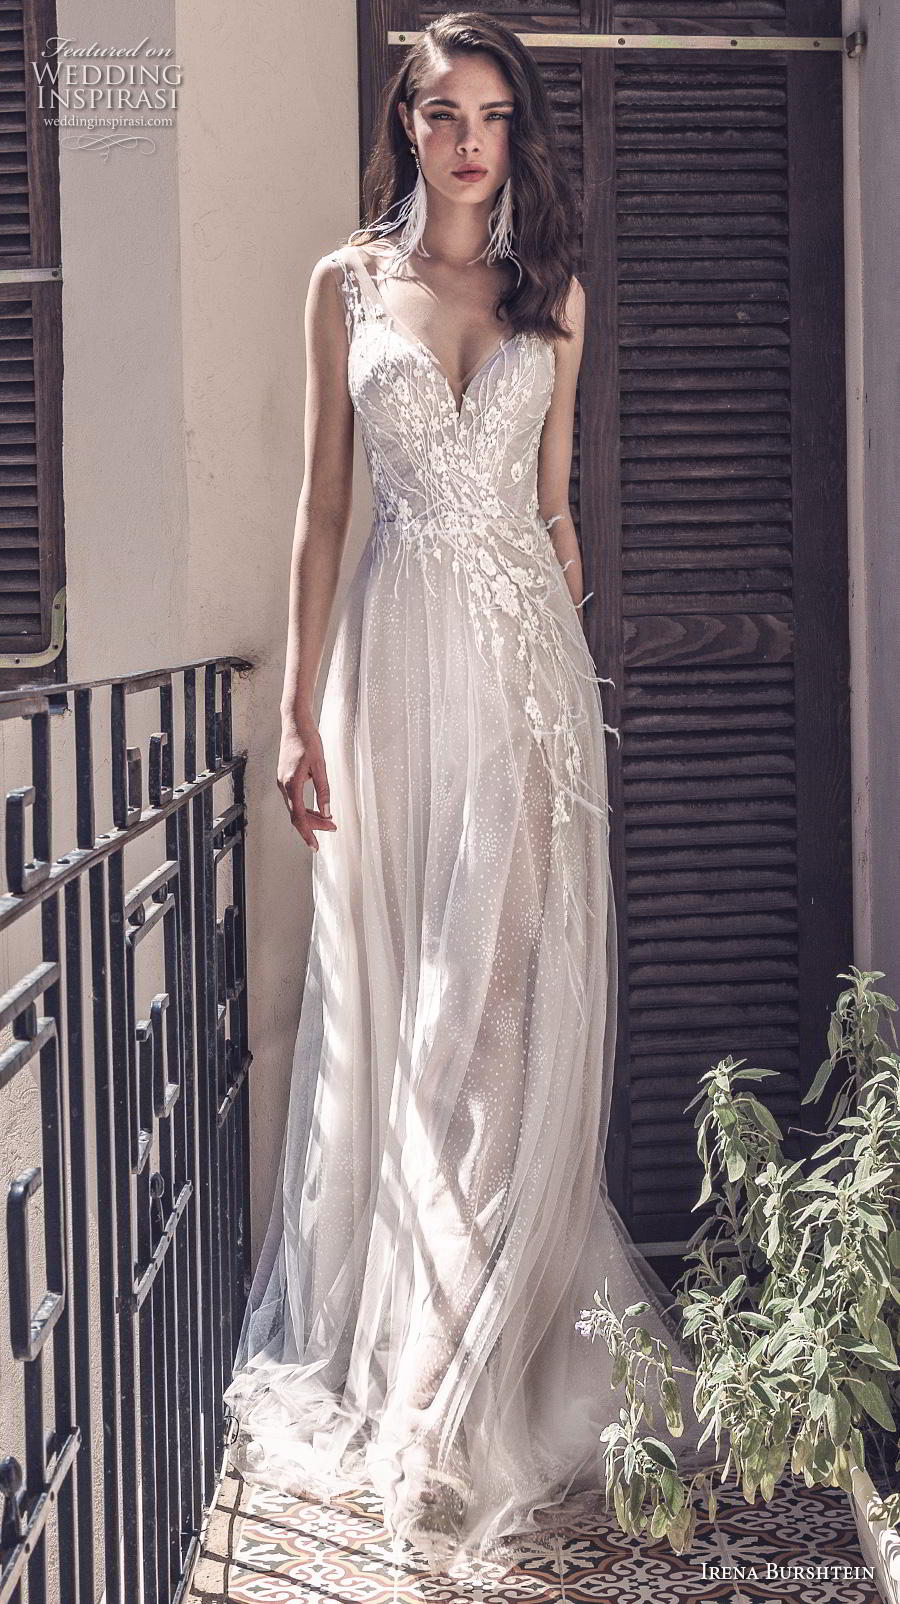 irena burshtein 2020 bridal sleeveless with strap sweetheart neckline heavily embellished bodice romantic modified a  line wedding dress v back medium train (4) mv